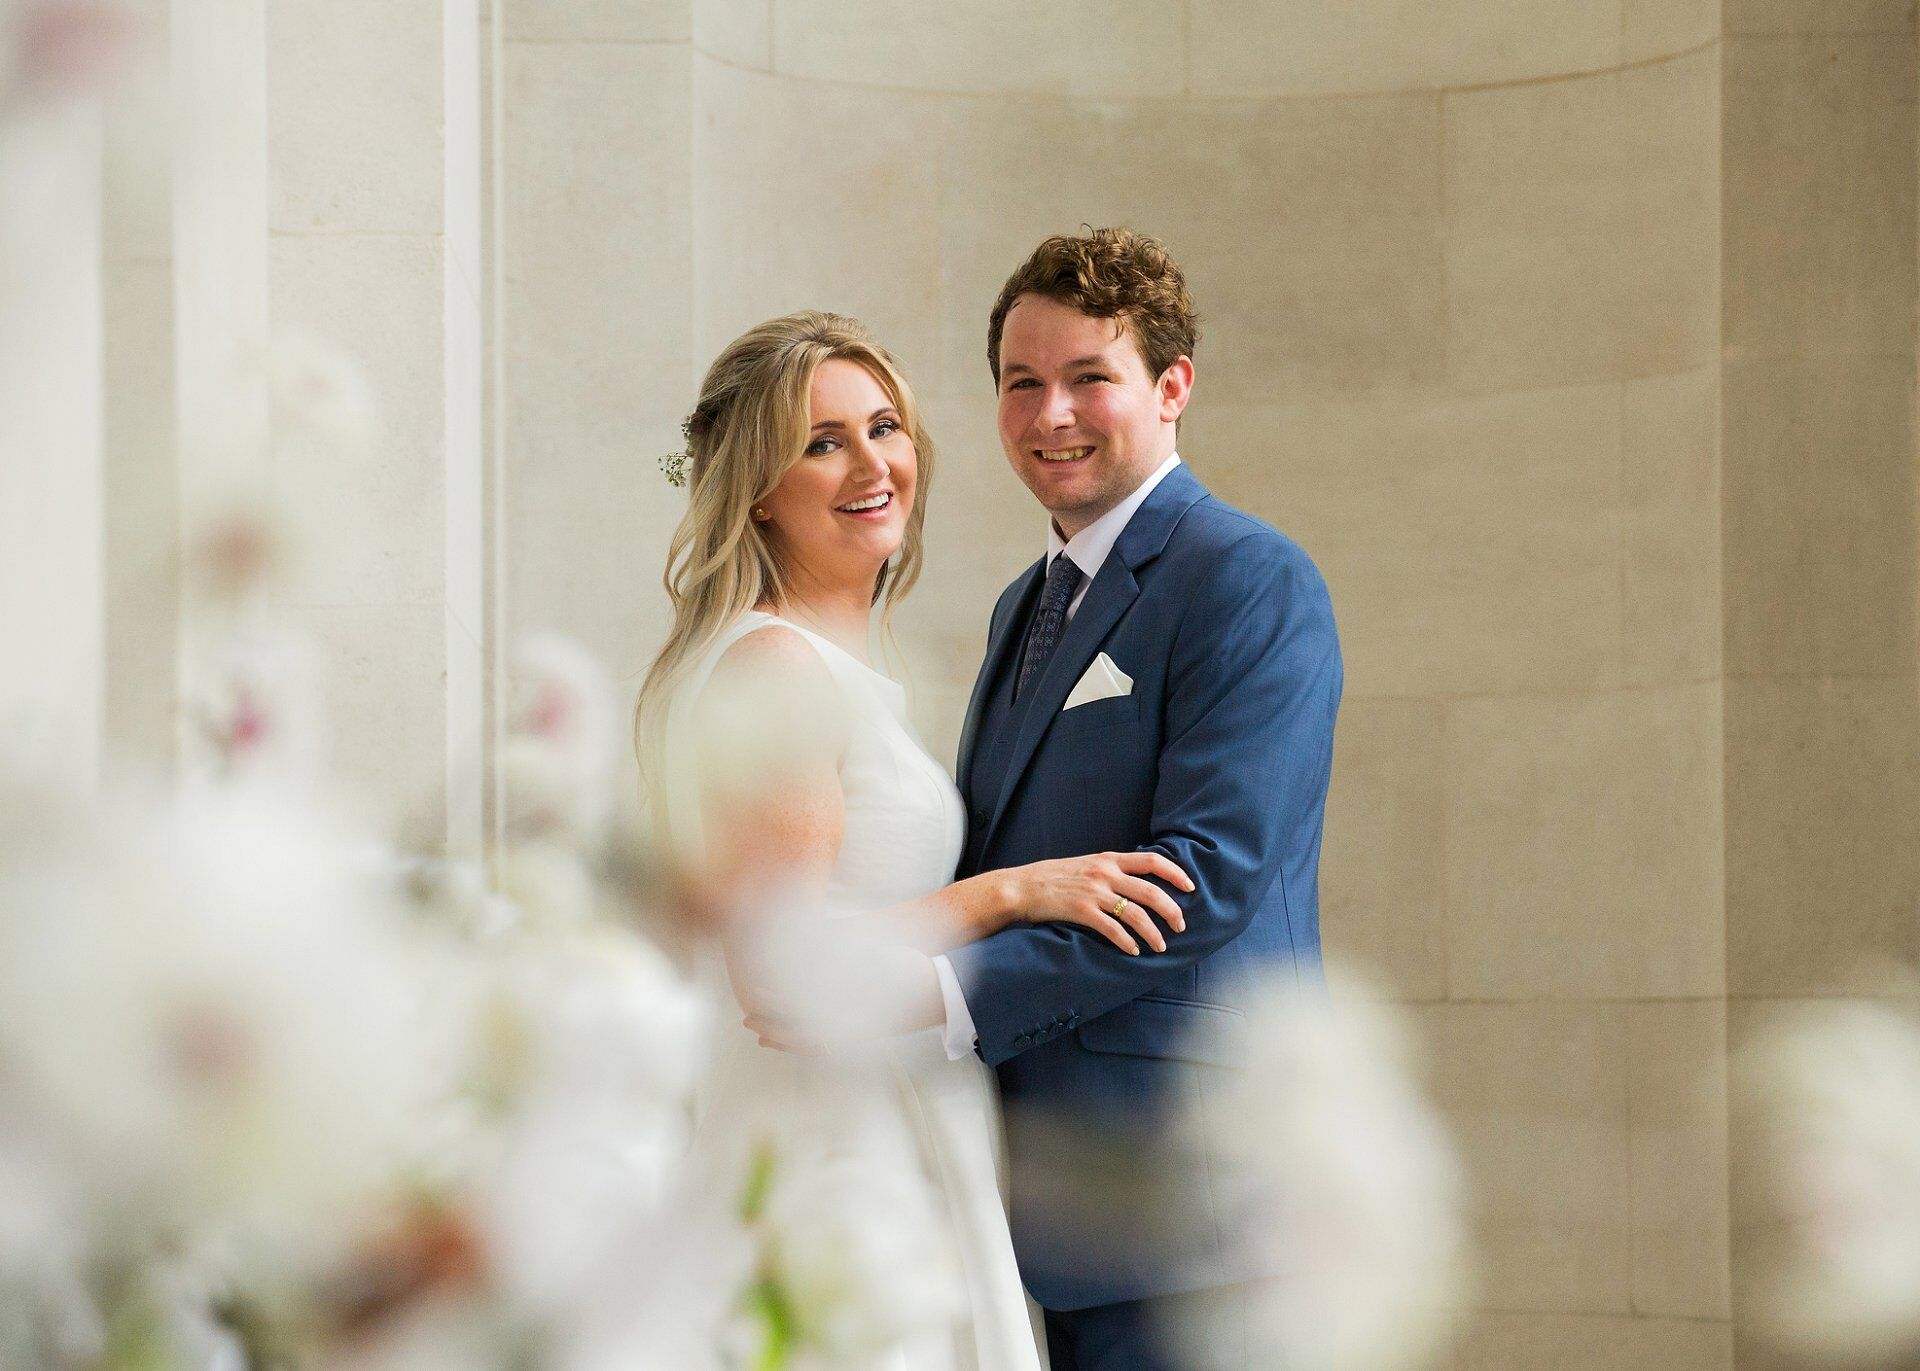 bride and groom by old marylebone town hall wedding photographer emma duggan (soho room wedding photography)